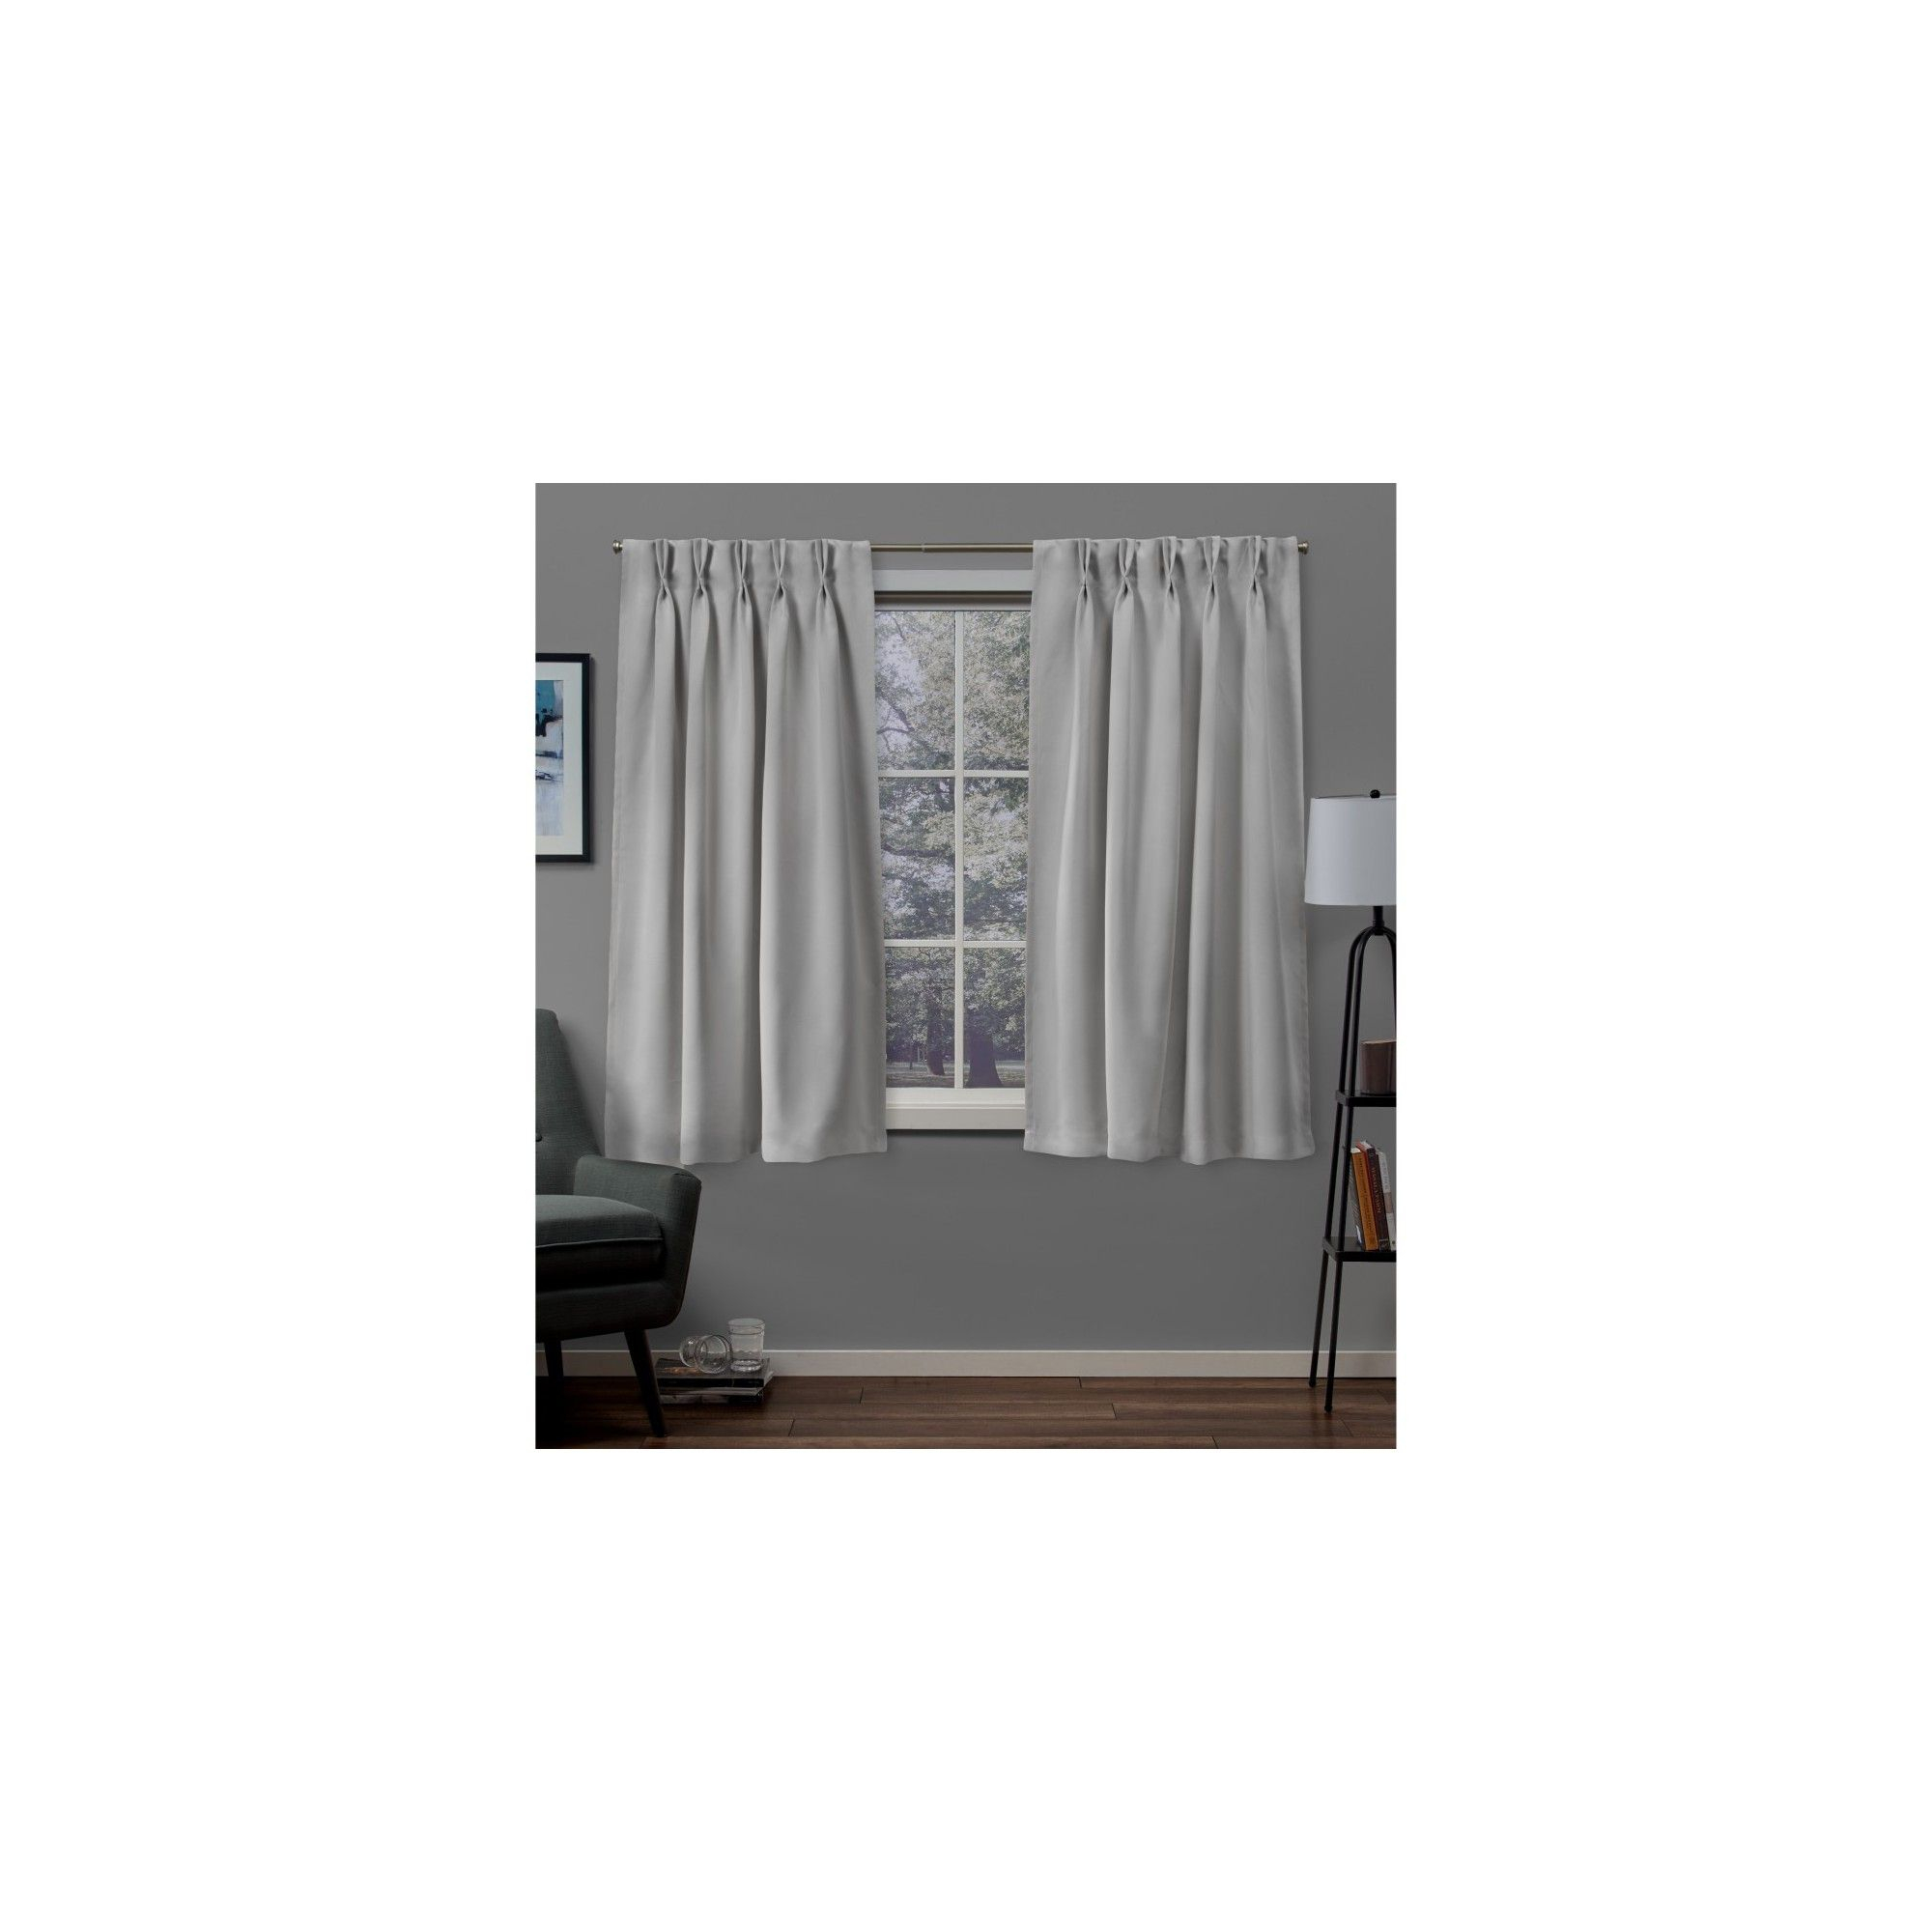 "30""x63"" Sateen Twill Woven Blackout Pinch Pleat Window Regarding Sateen Woven Blackout Curtain Panel Pairs With Pinch Pleat Top (View 1 of 20)"